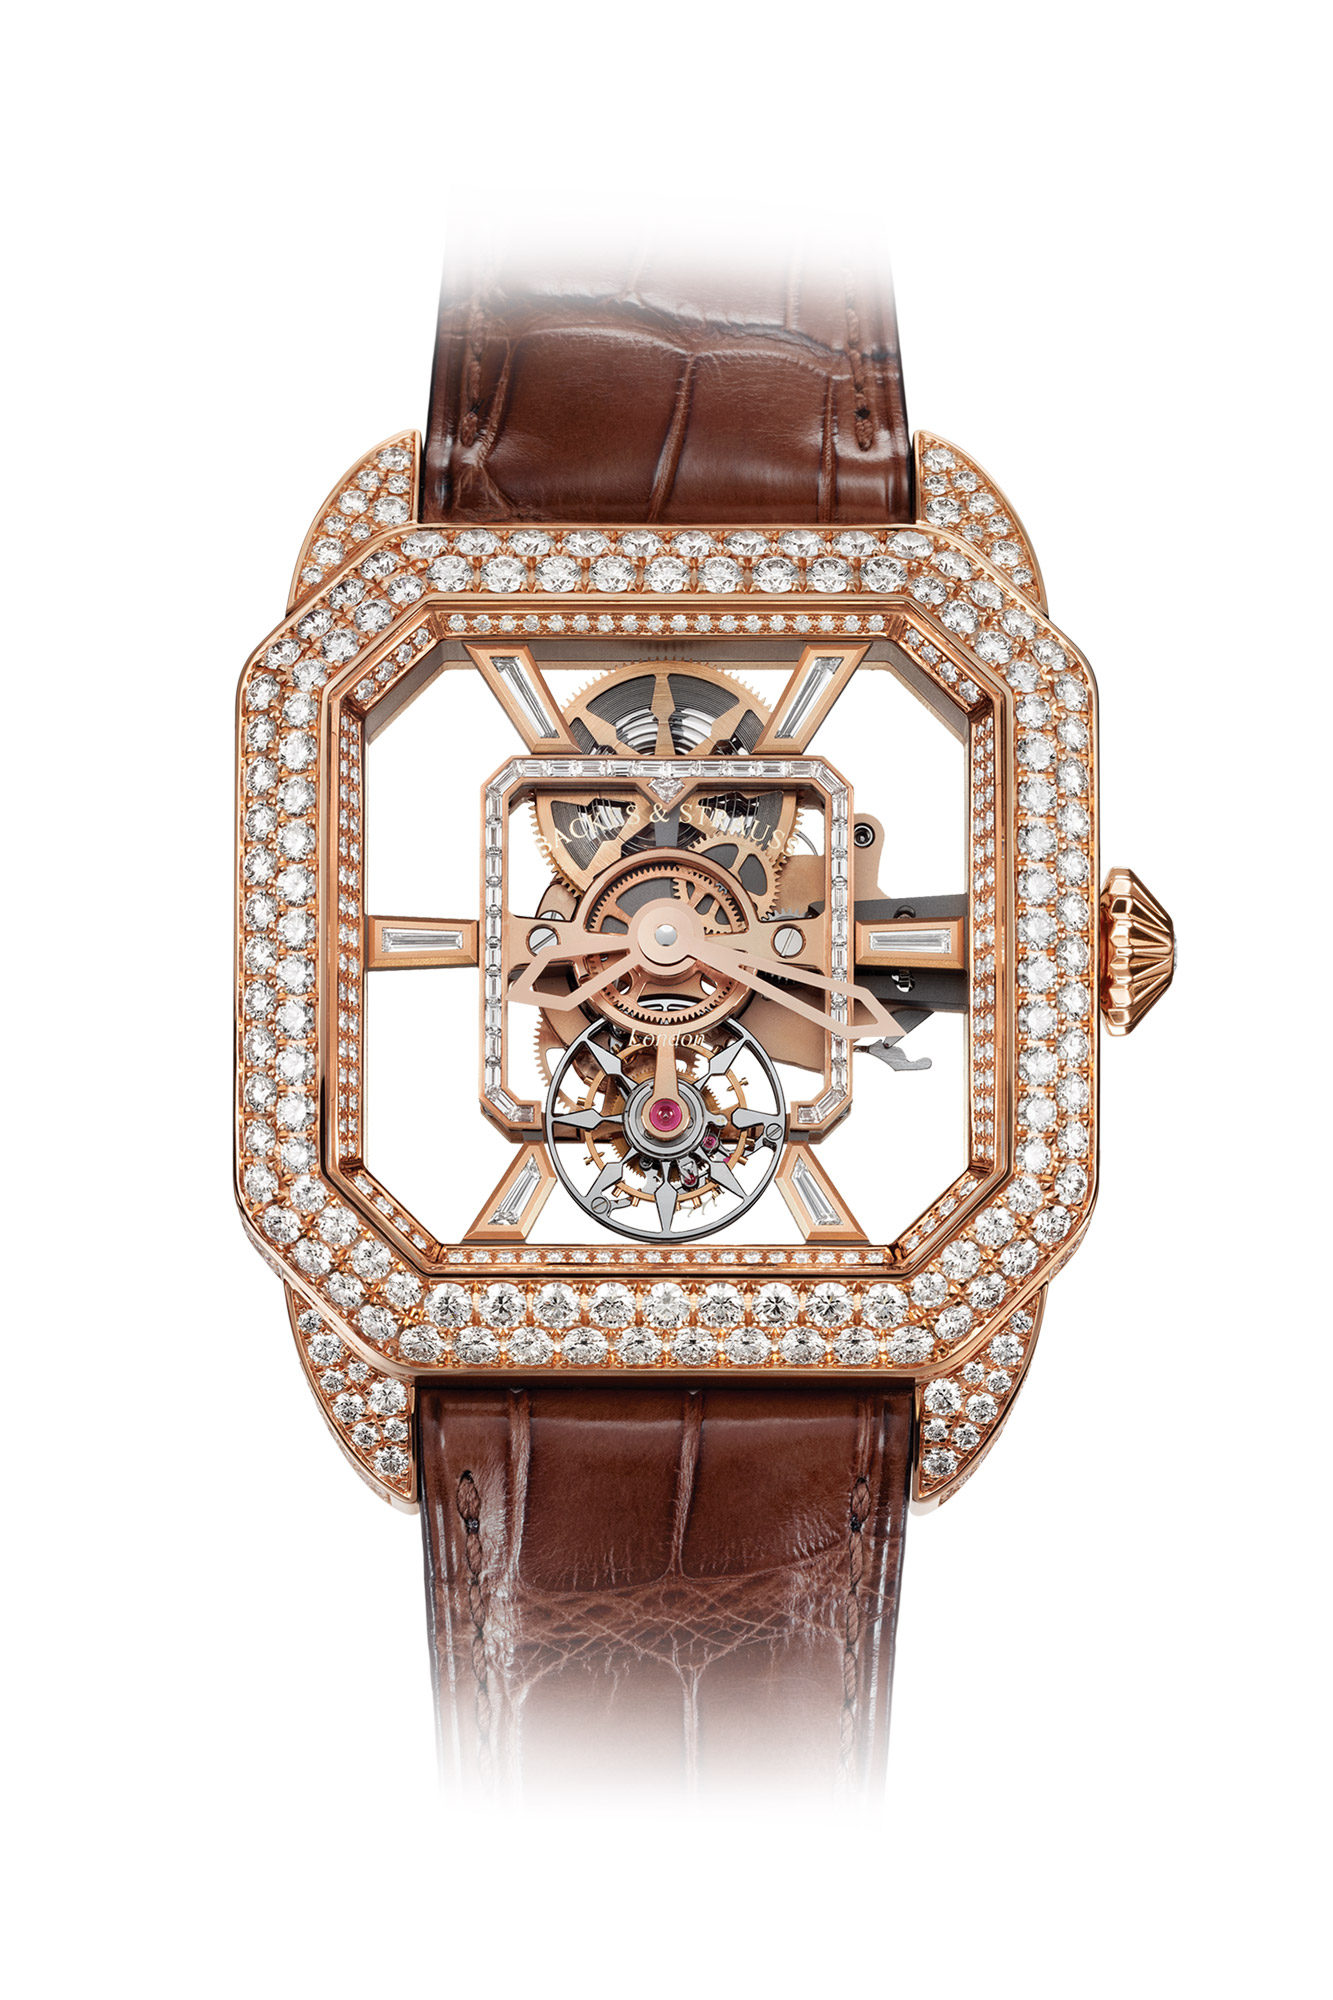 Berkeley Emperor Brilliant Tourbillon in Rose Gold from Backes & Strauss